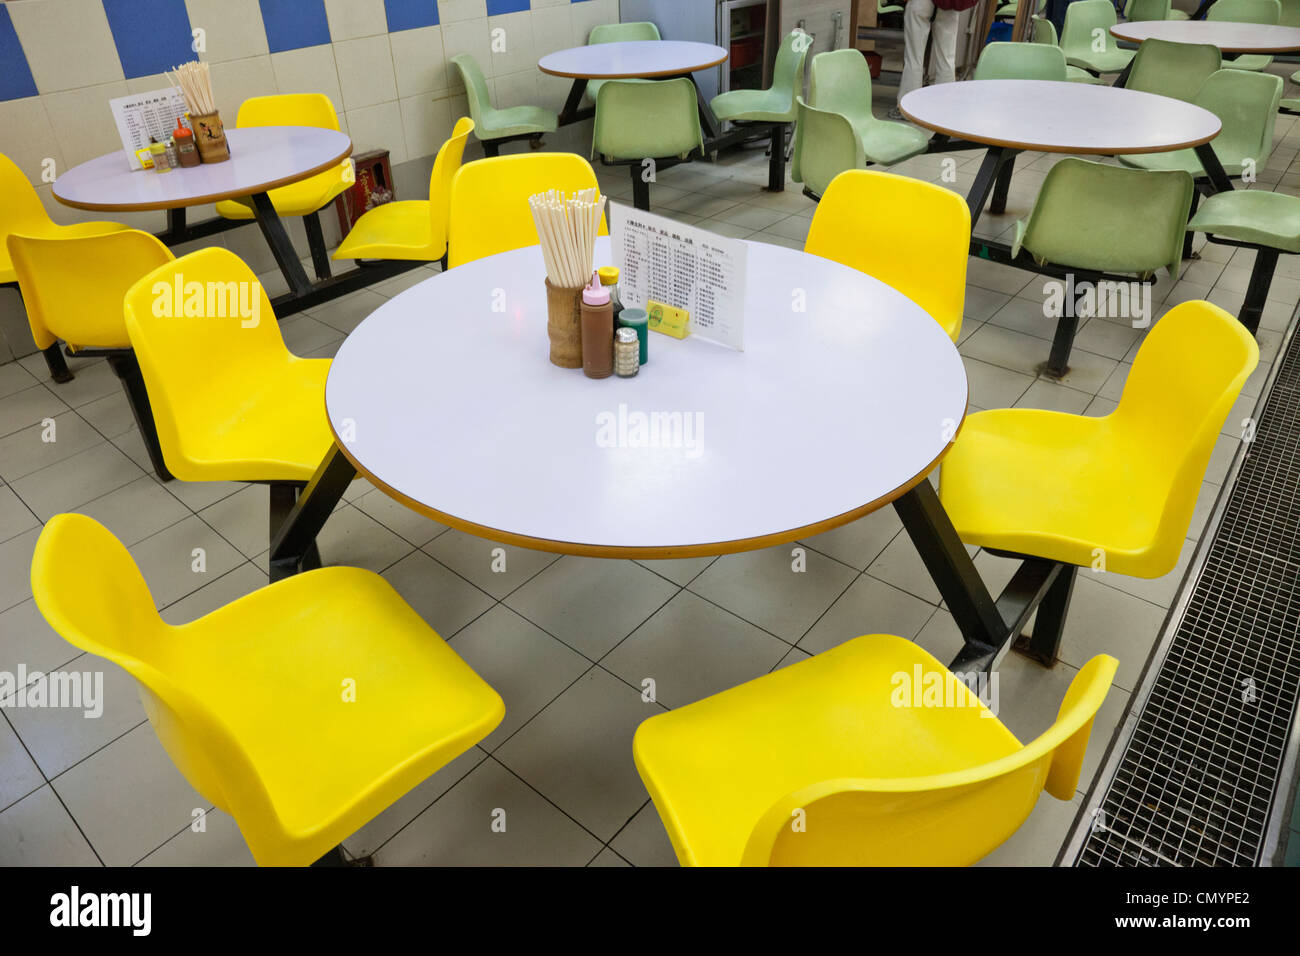 China Hong Kong Food Court Dining Table And Chairs